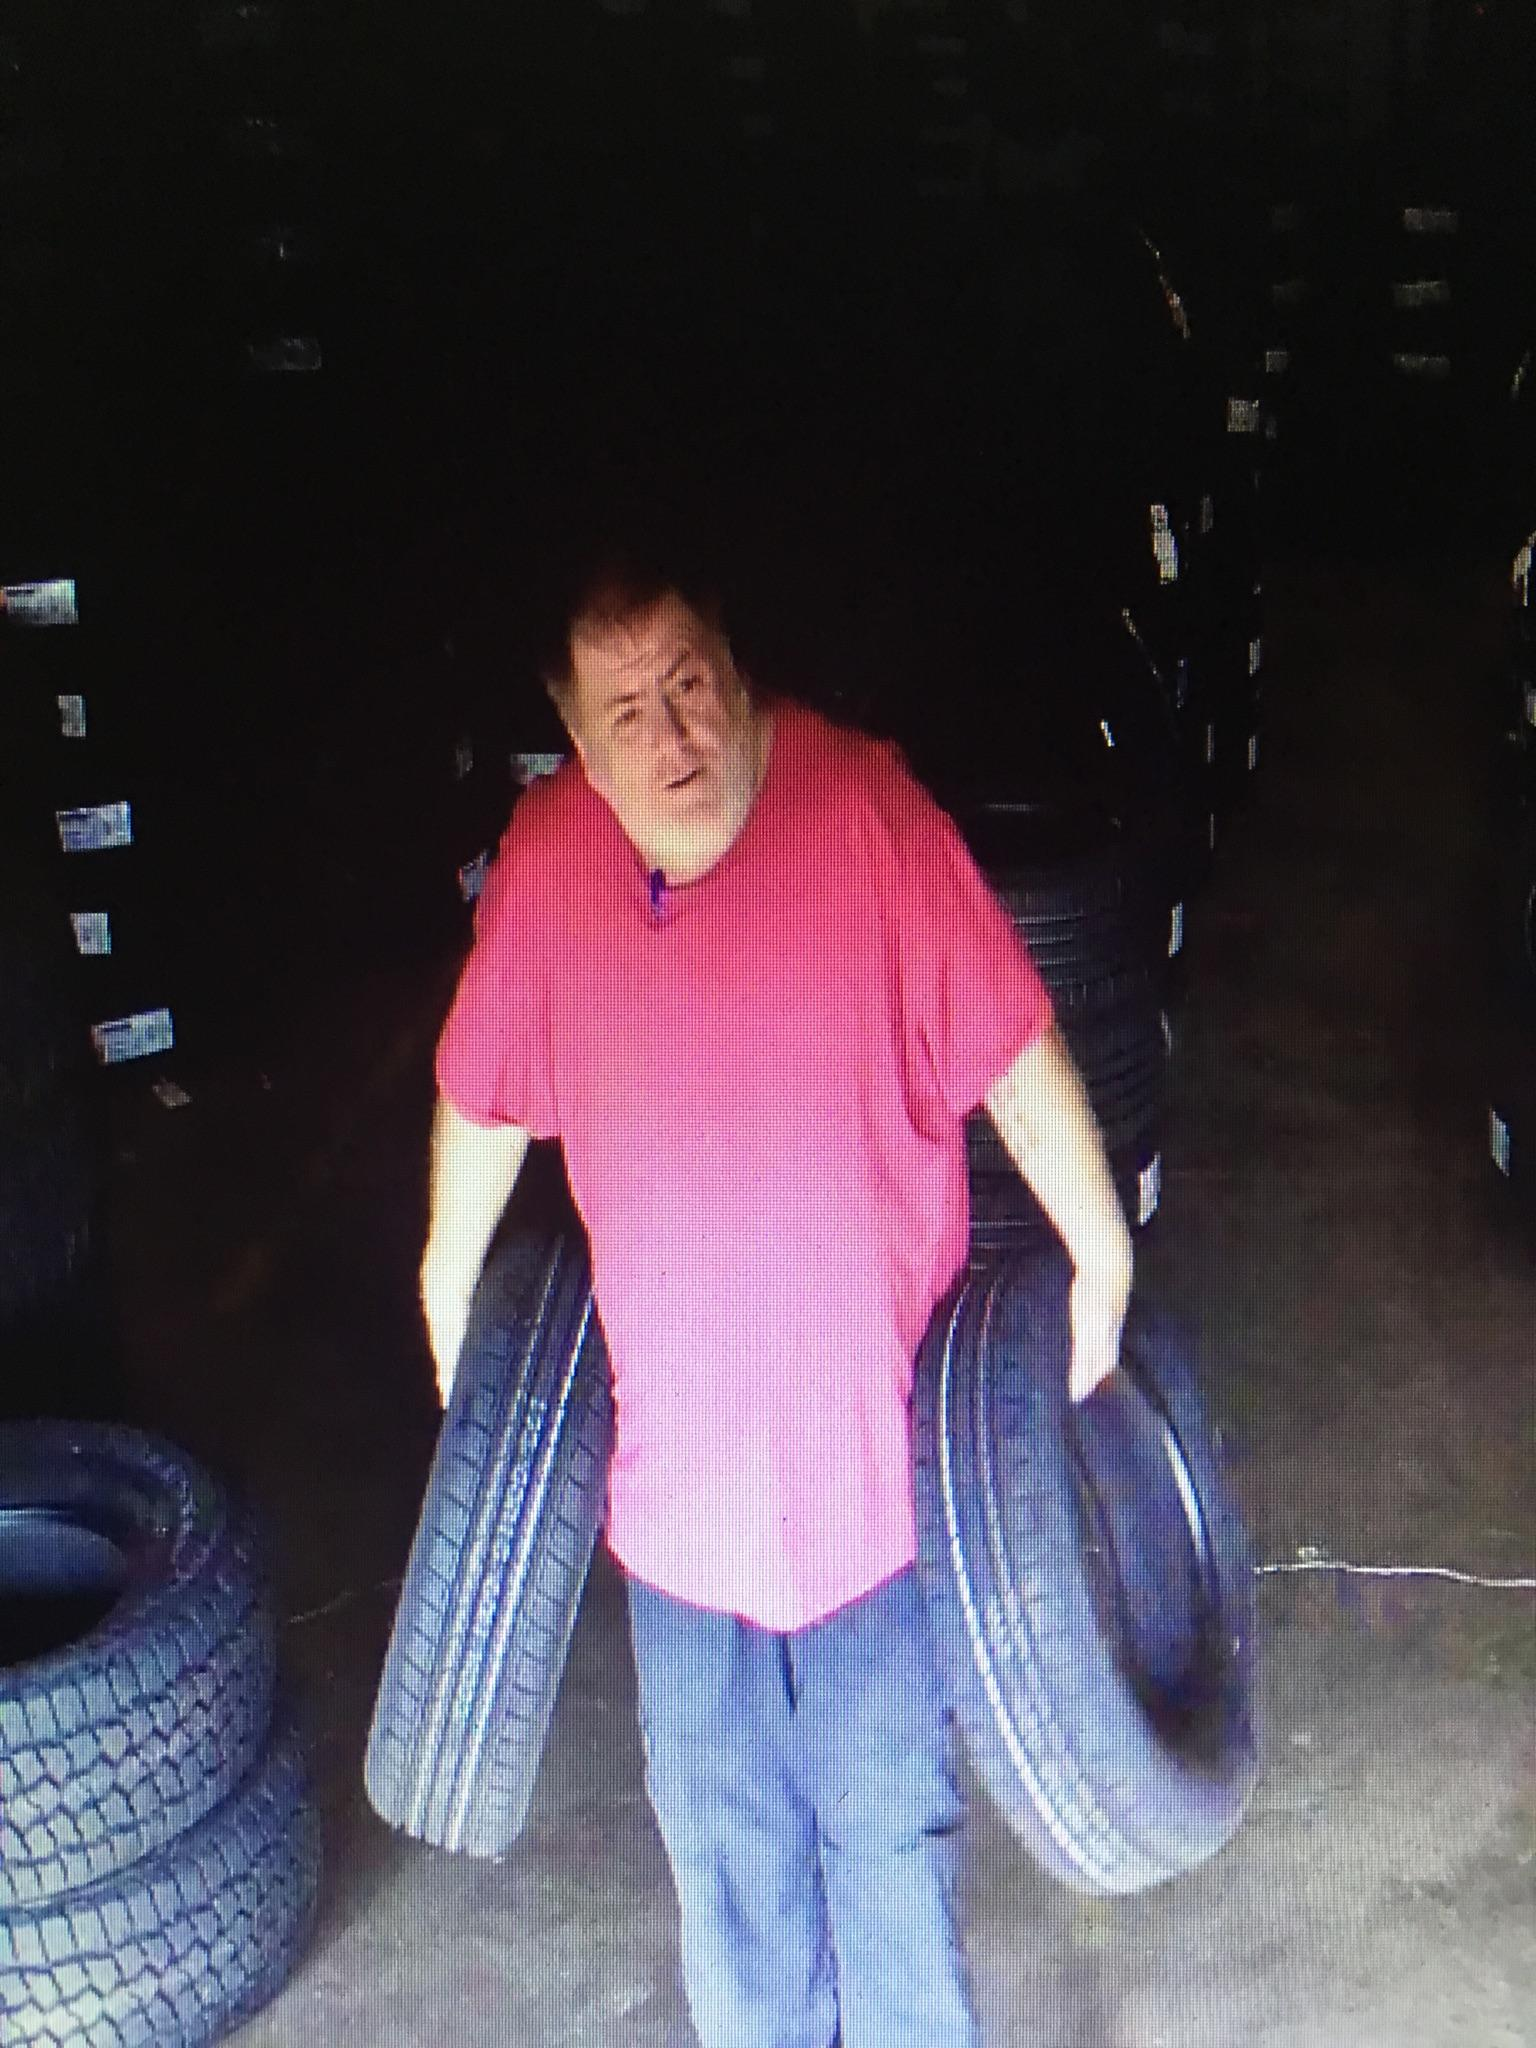 Theft of Tires at local Tire Dealer in Murfreesboro